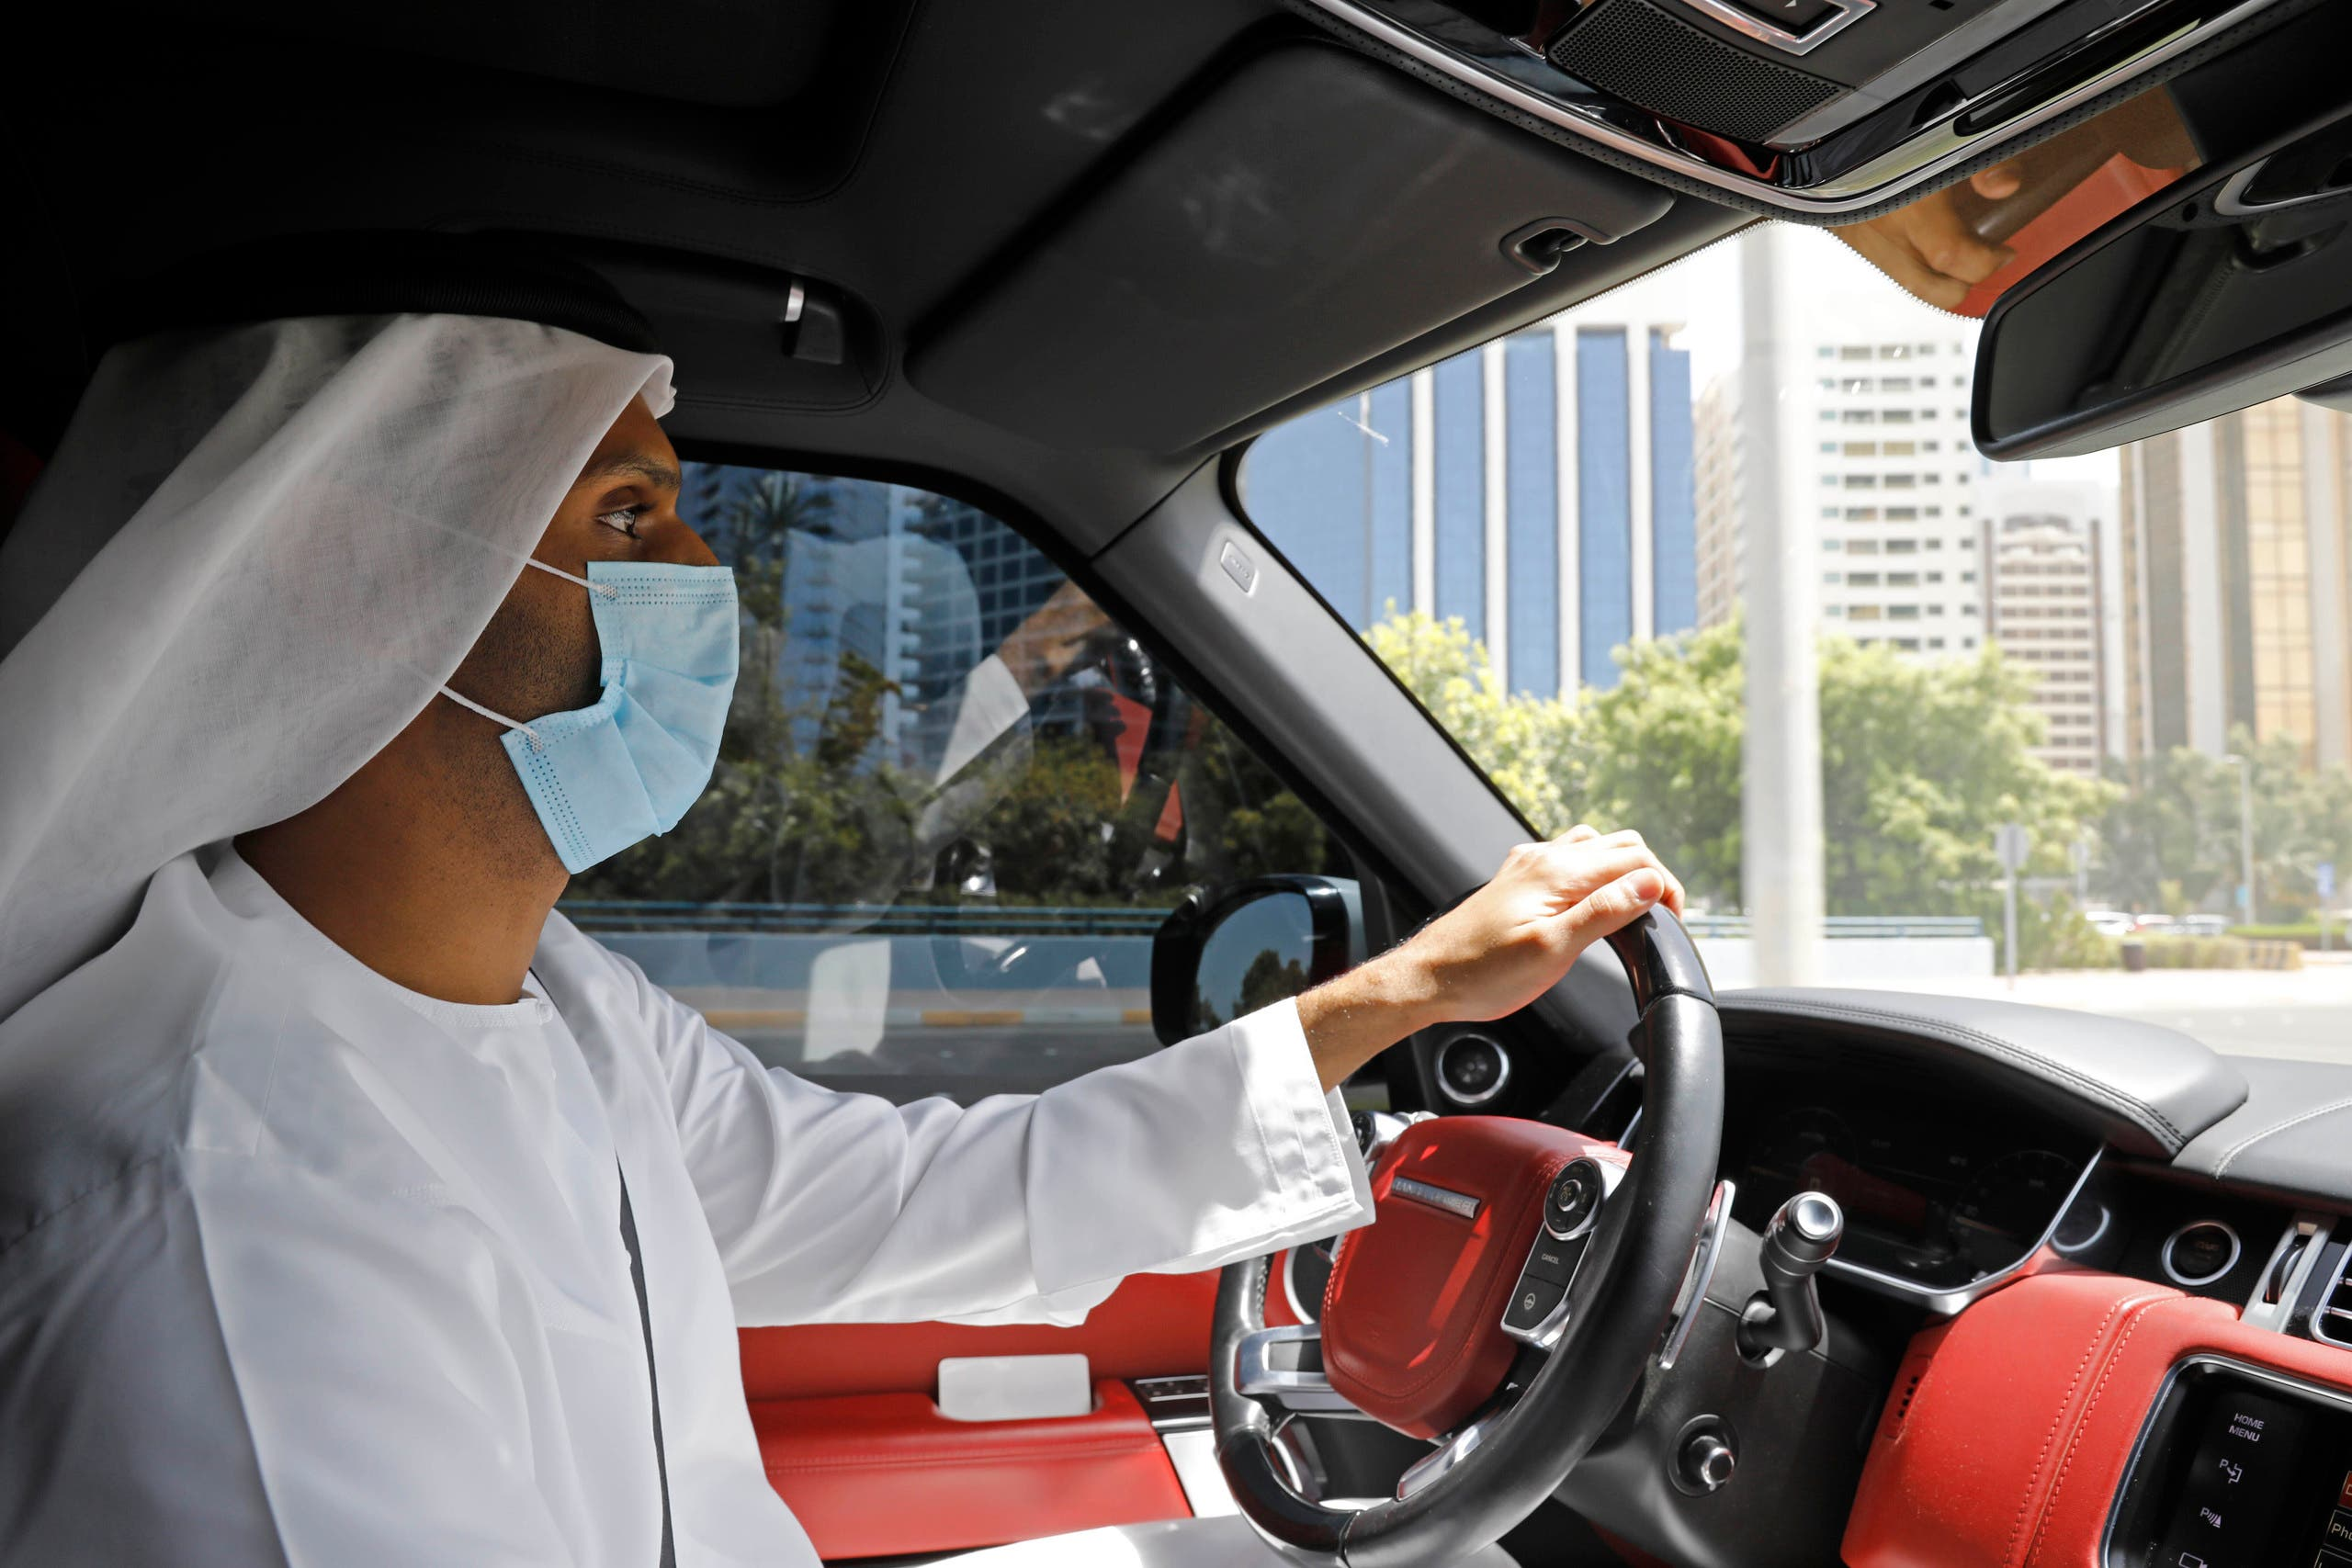 An Emirati official wears a mask as he drives a vehicle in Abu Dhabi on Sept. 1, 2020. (AP)